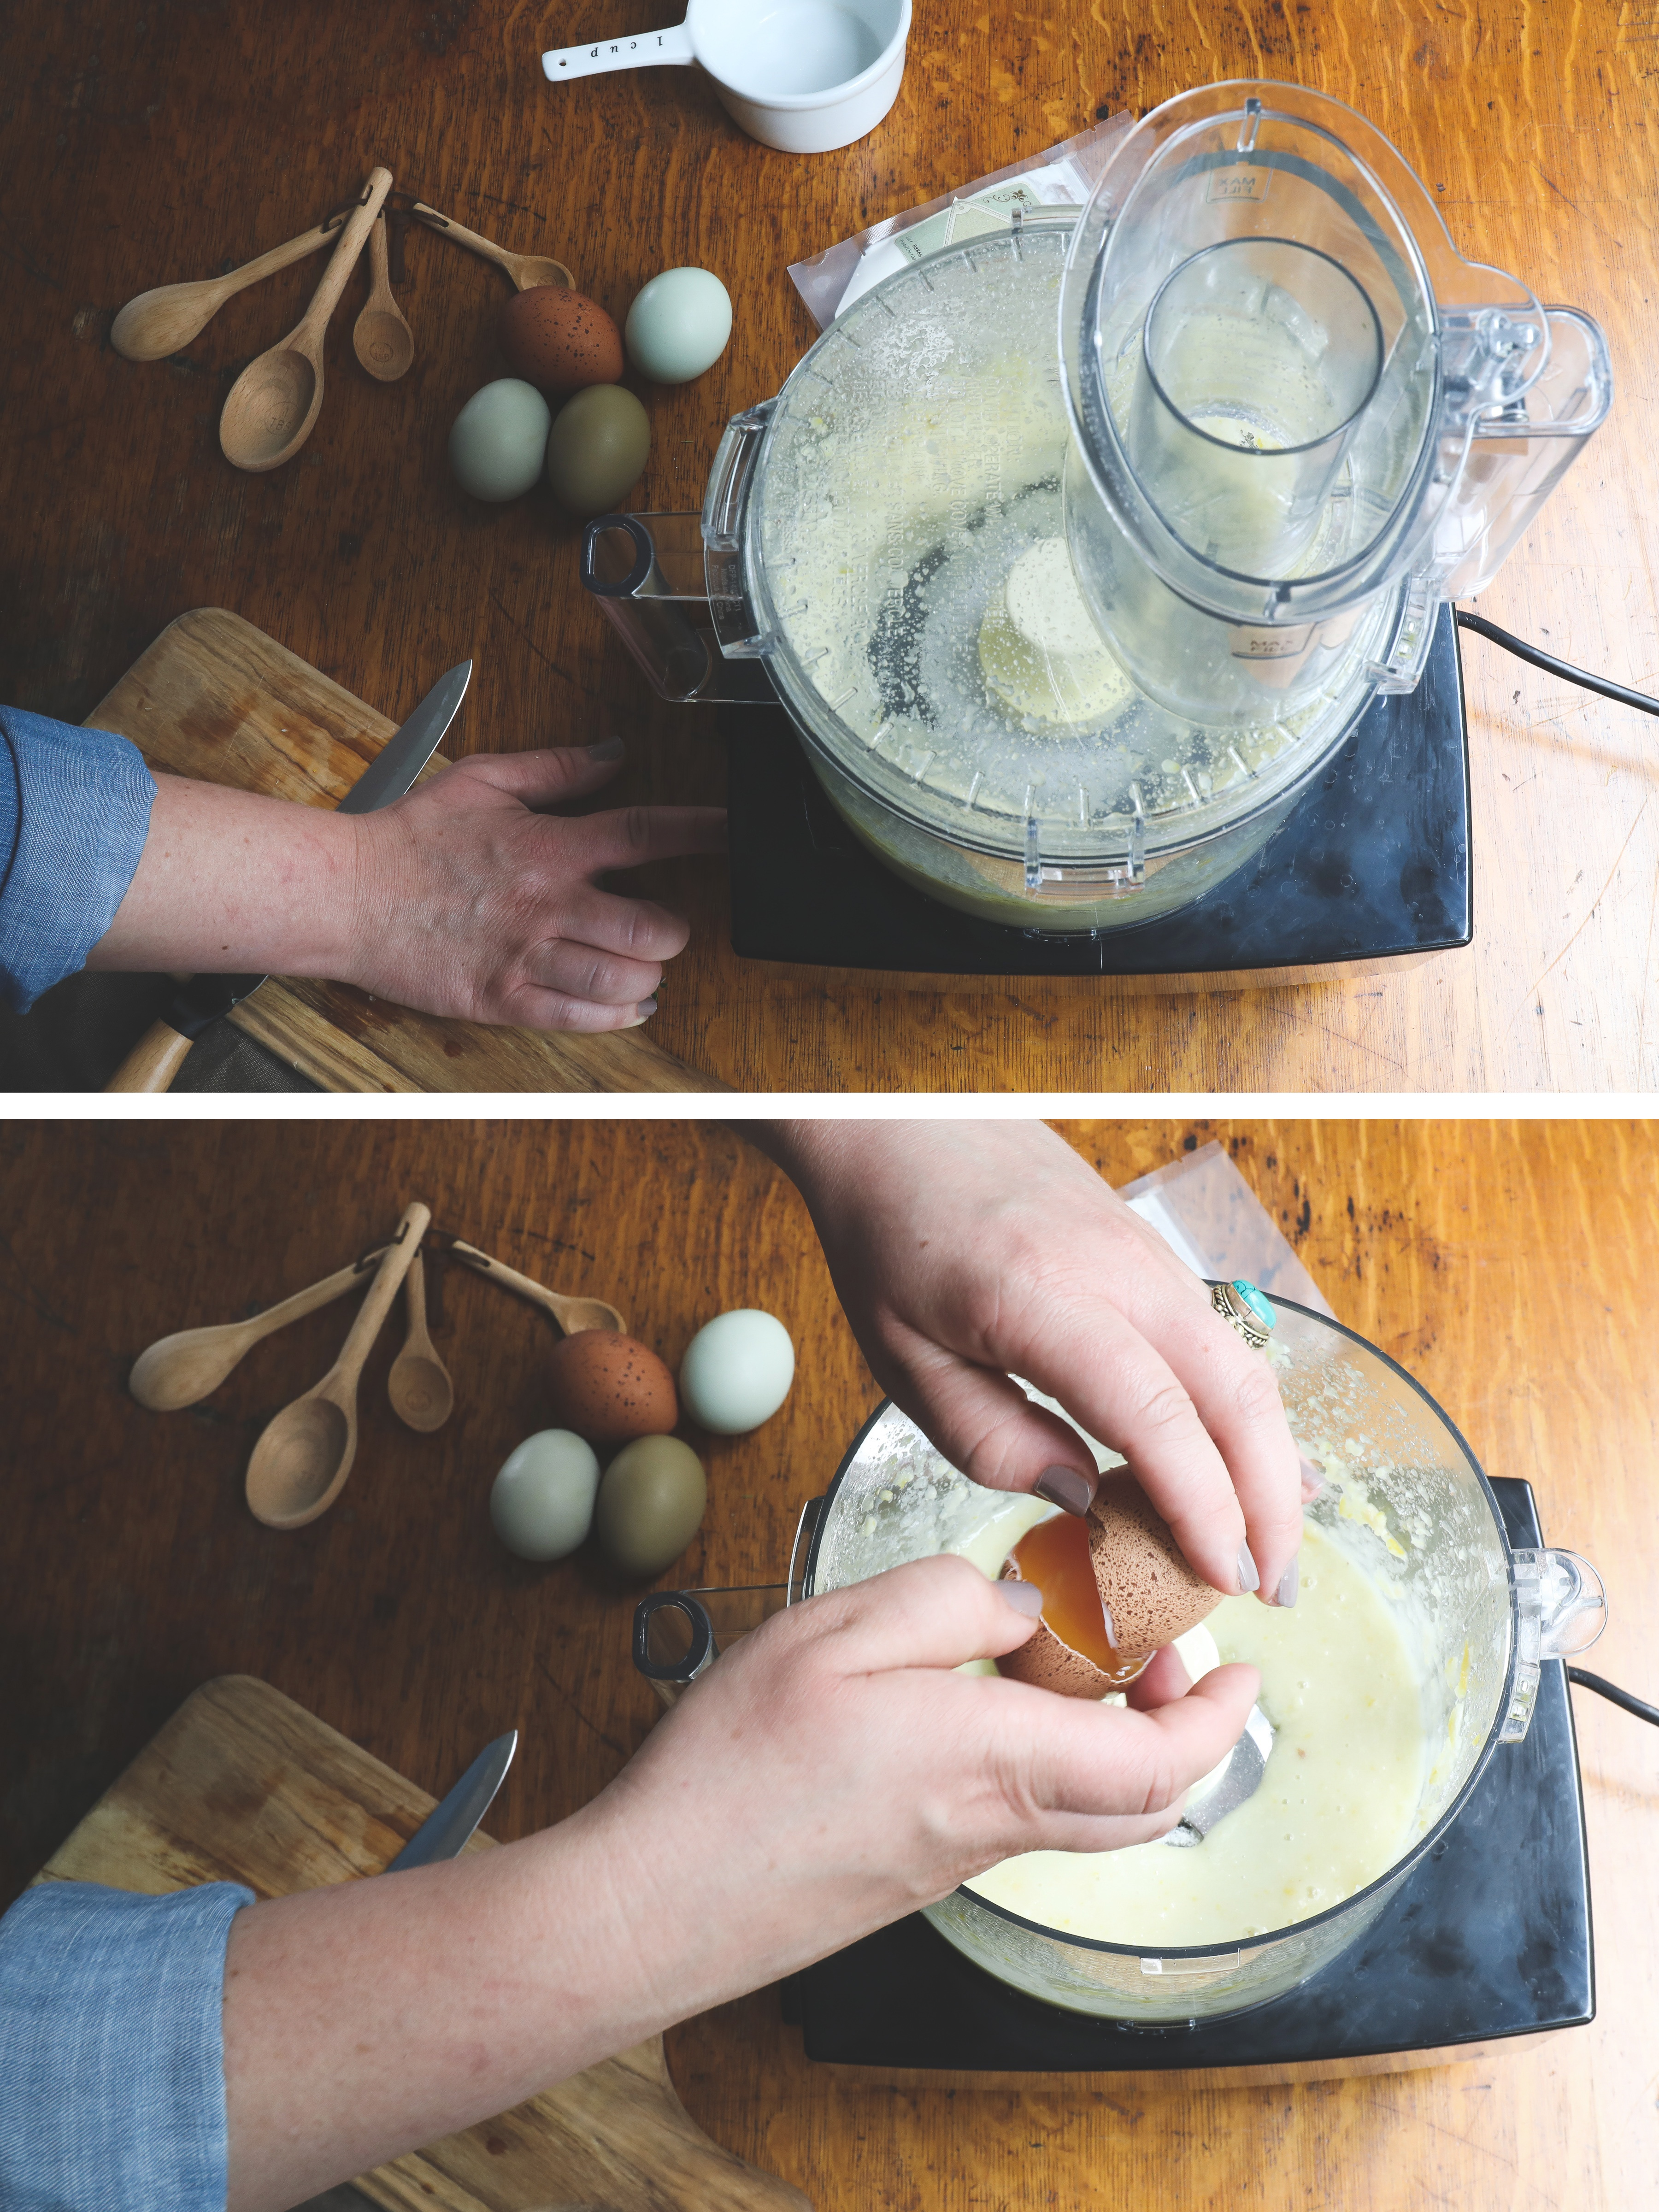 Hands cracking eggs into food processor to make lemon lavender thyme bars